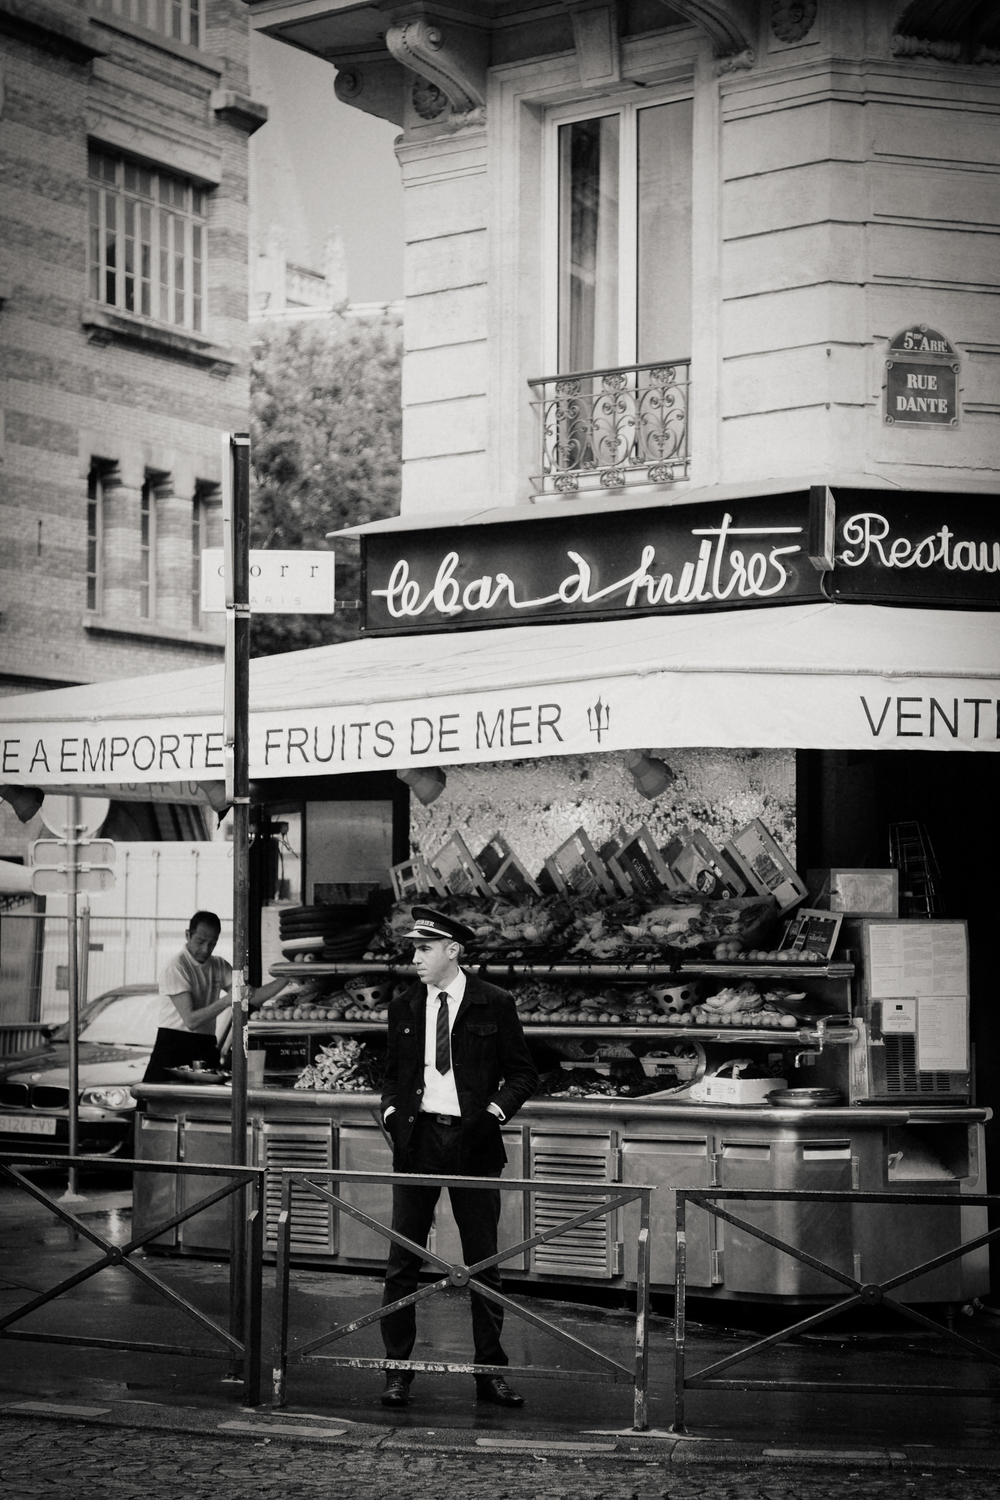 doorman, Paris 2014.